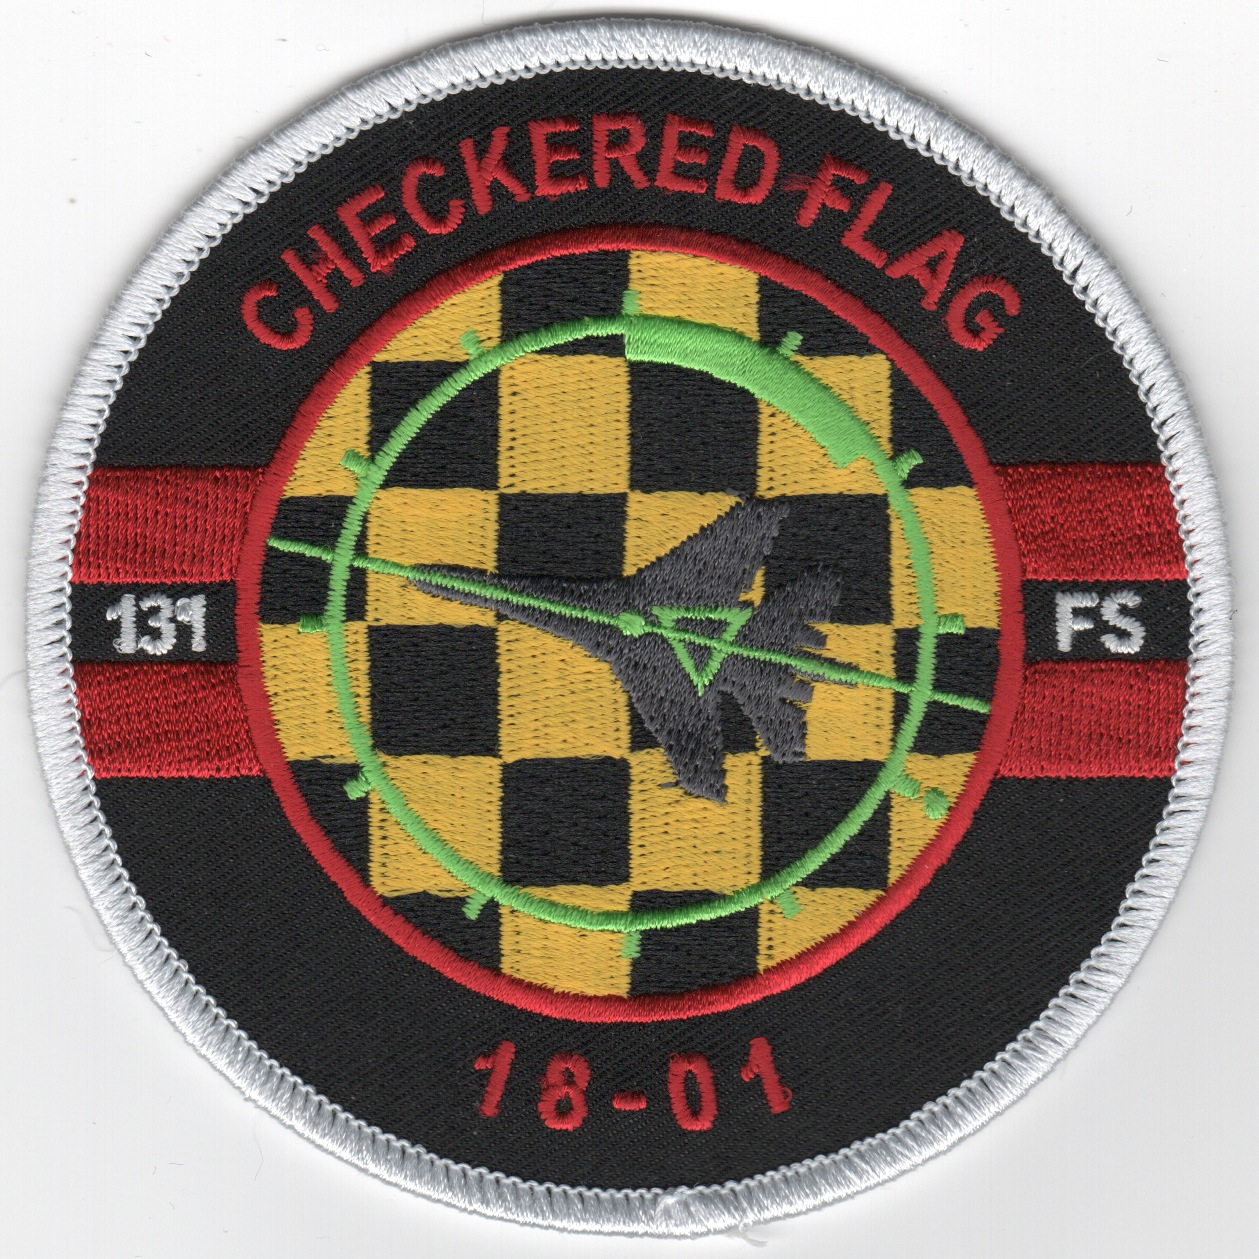 131FS 'Checkered Flag' 18-01 Patch